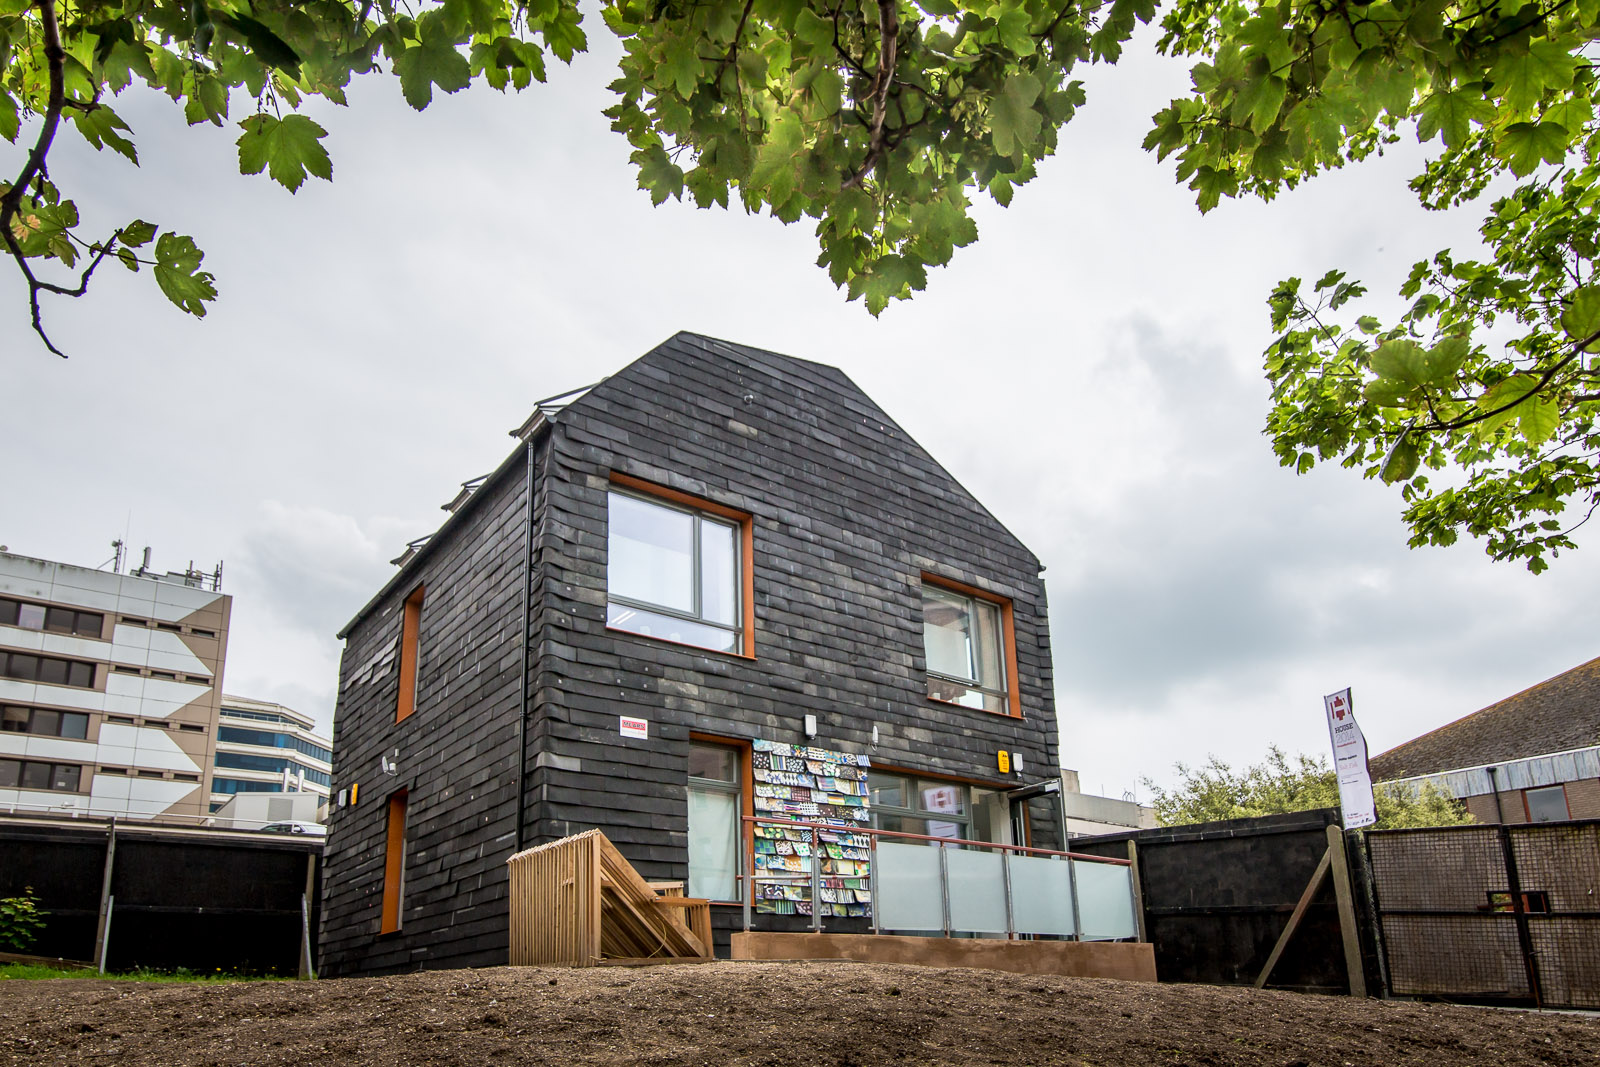 Brighton waste house live projects network for Brighton house